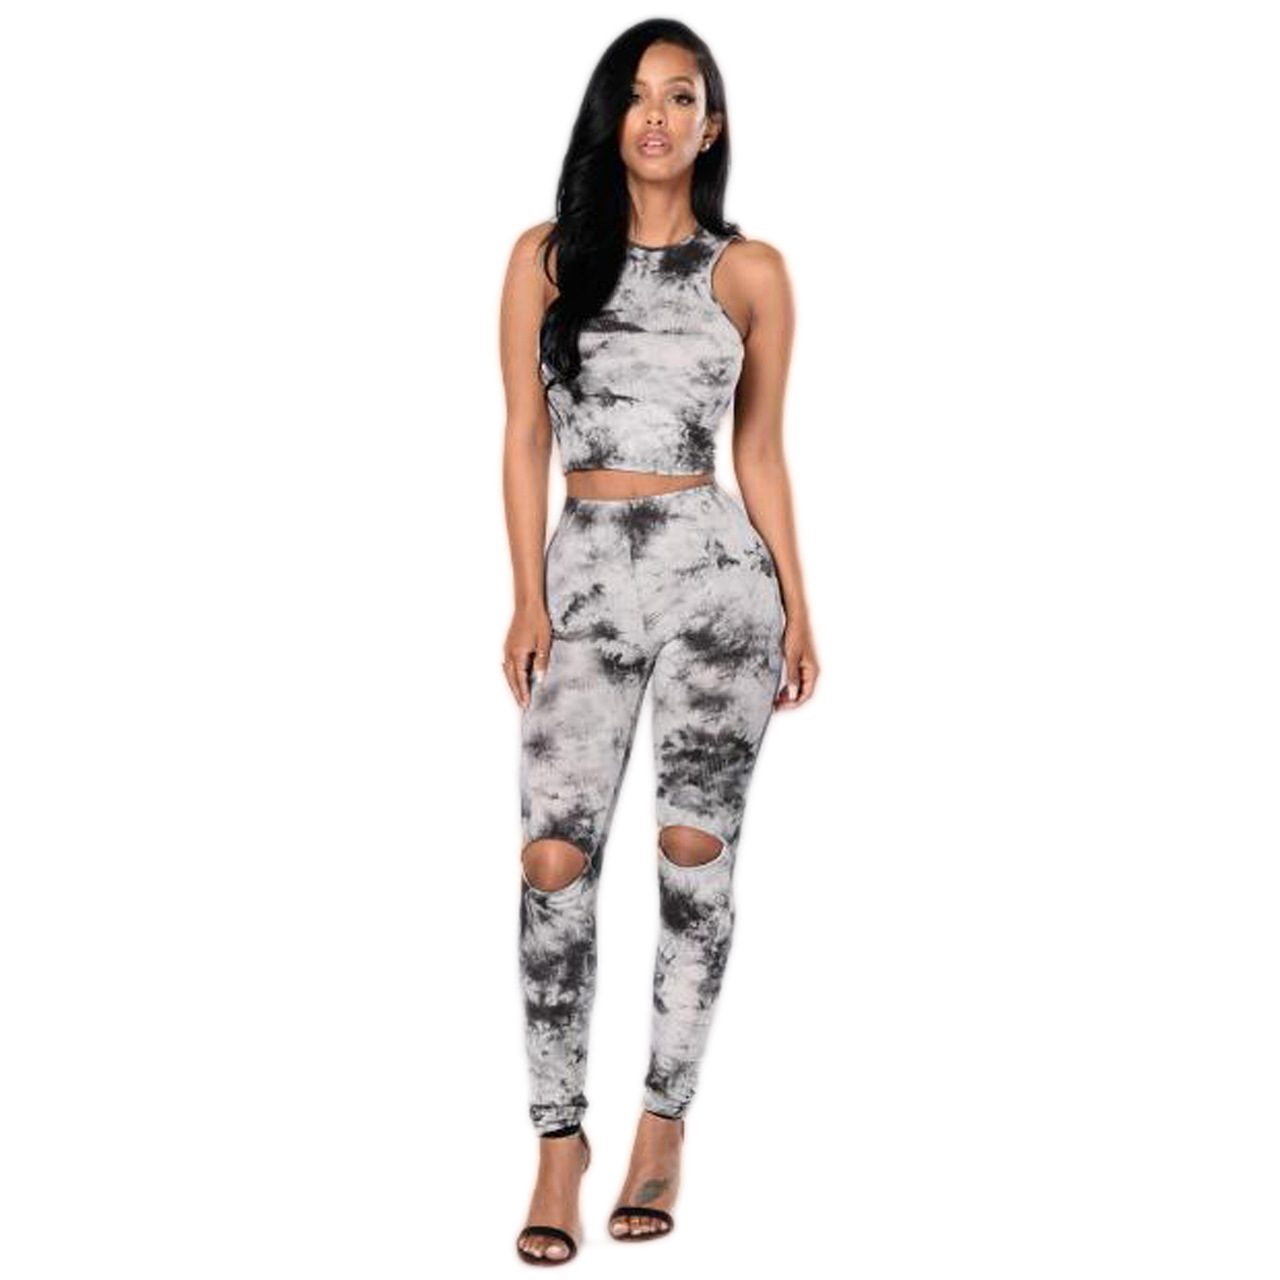 M302 Summer WOMEN'S Dress Separate Station Hot Selling Classic Ink Painting Printed Set Hot Selling